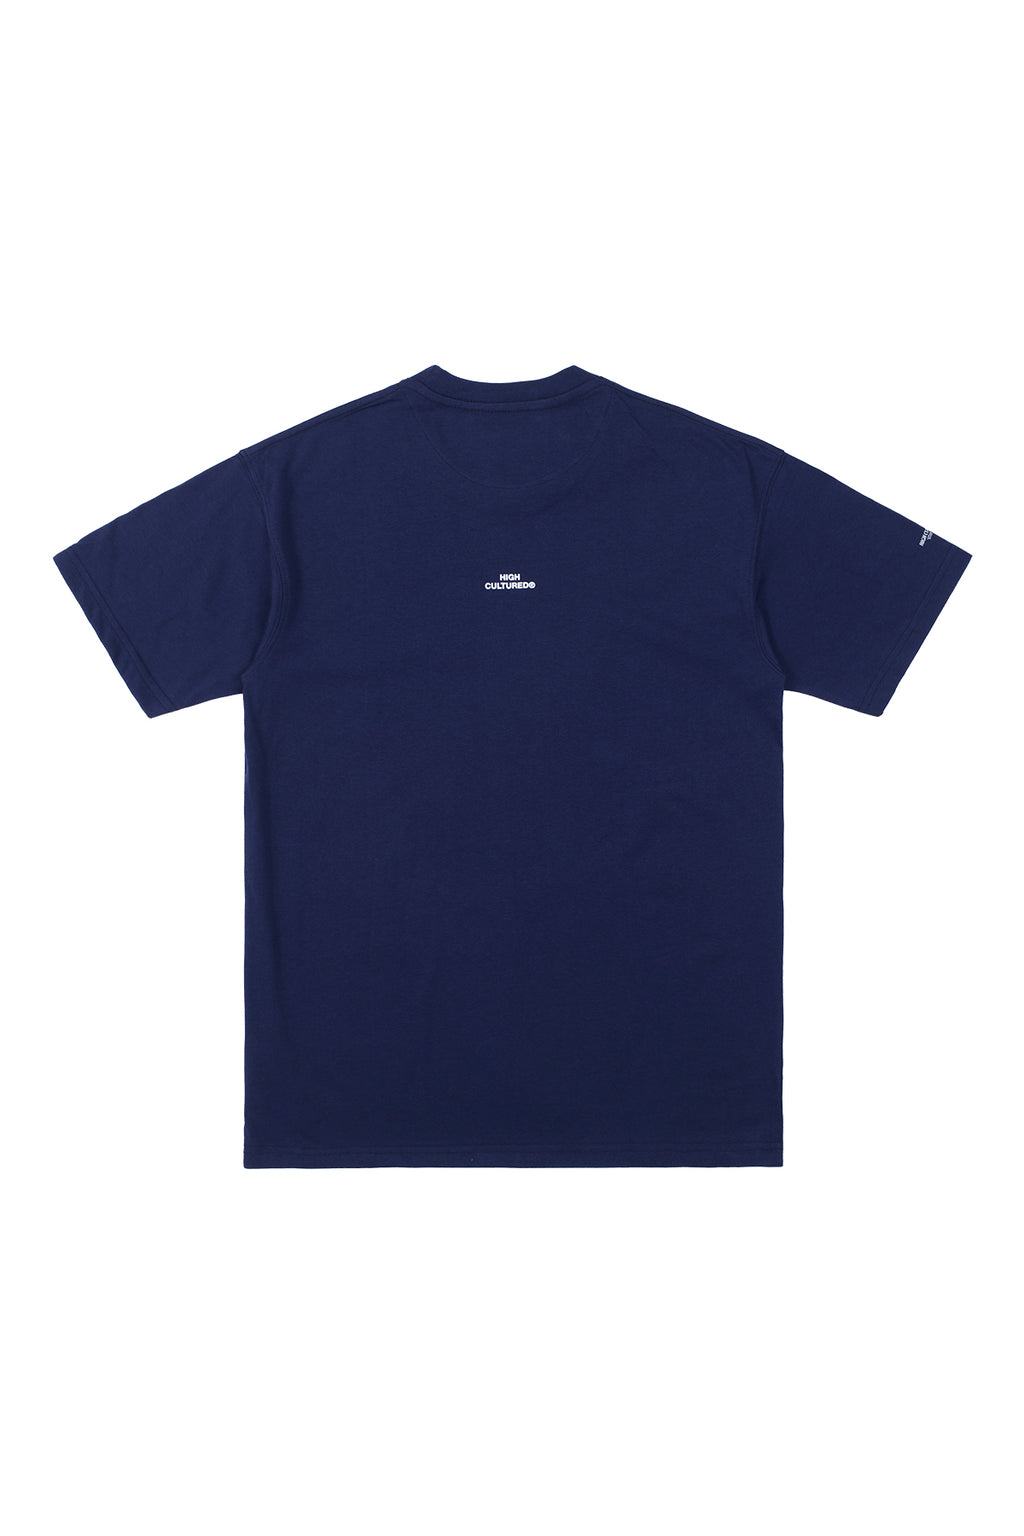 LAZY CLUB MOUSE TEE | NAVY - 782